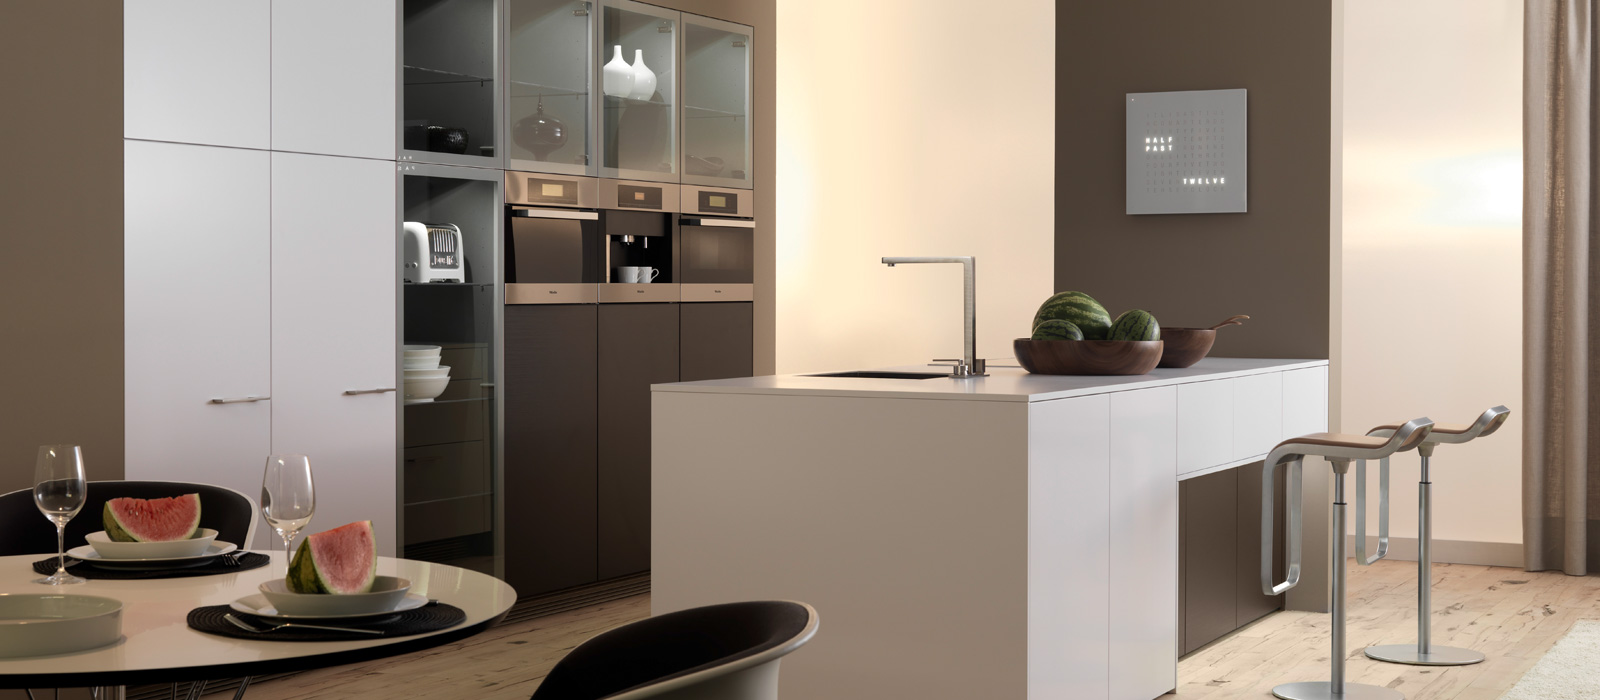 leichtny german kitchen cabinets Leading NYC Modern European Kitchen Provider Kitchen Cabinets Leicht New York